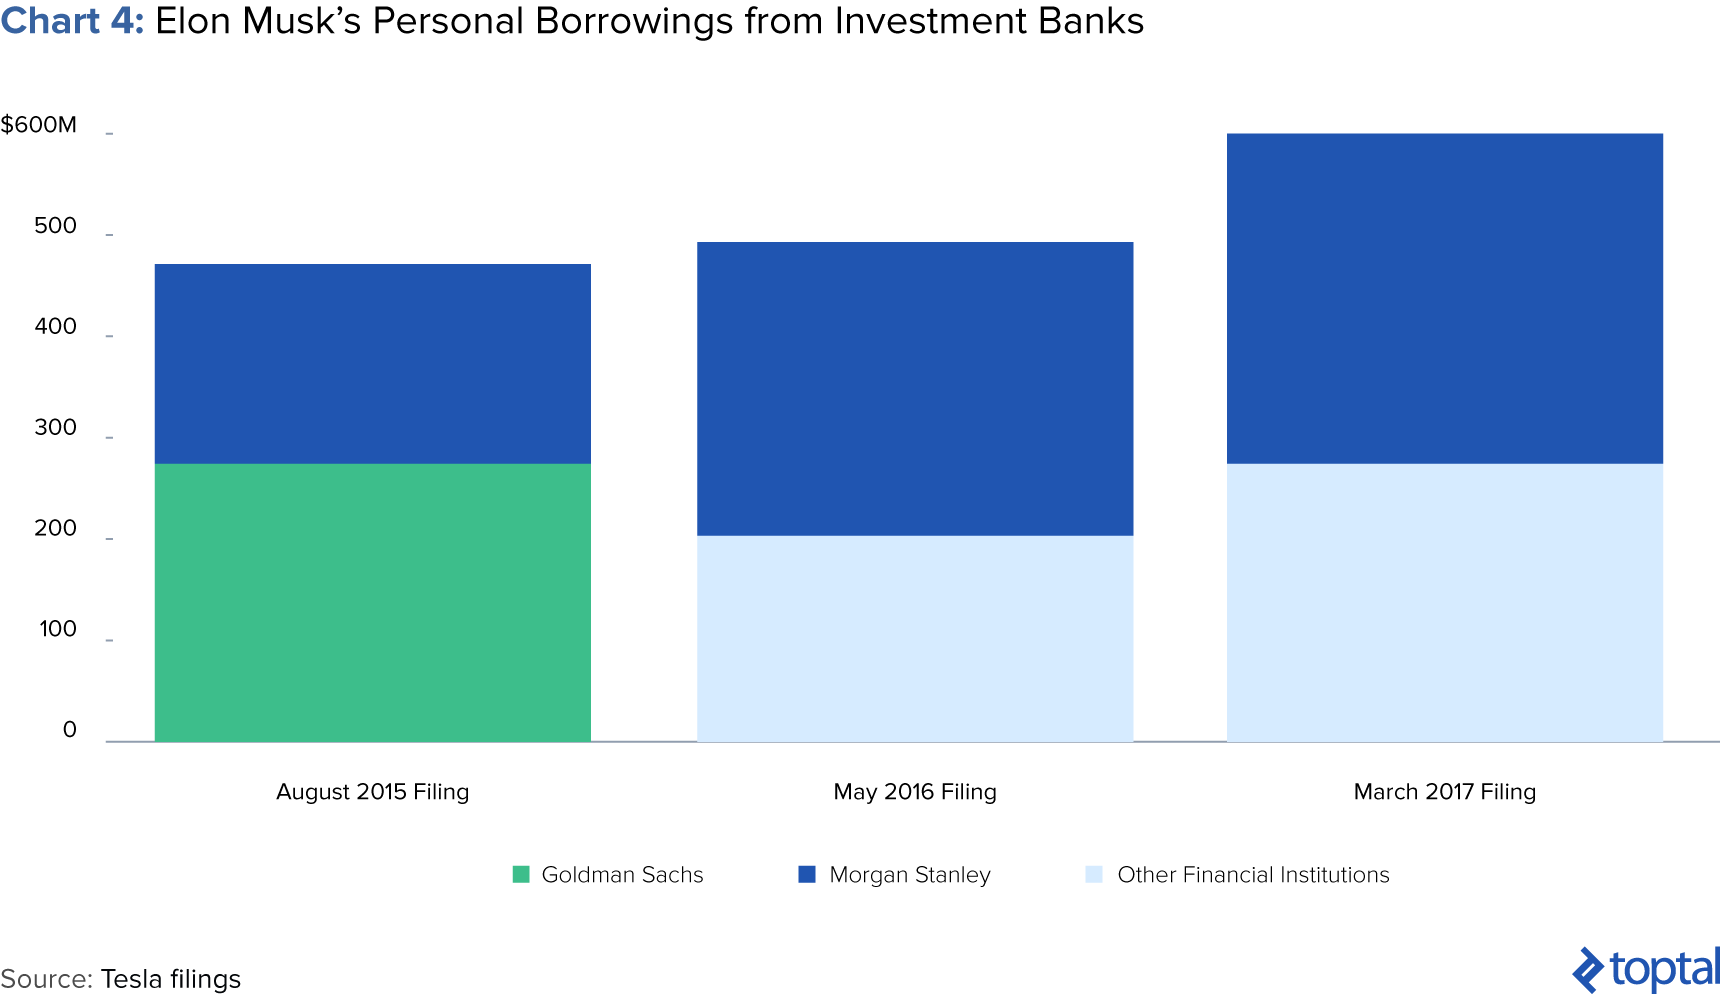 Chart 4: Elon Musk's Personal Borrowings from Investment Banks